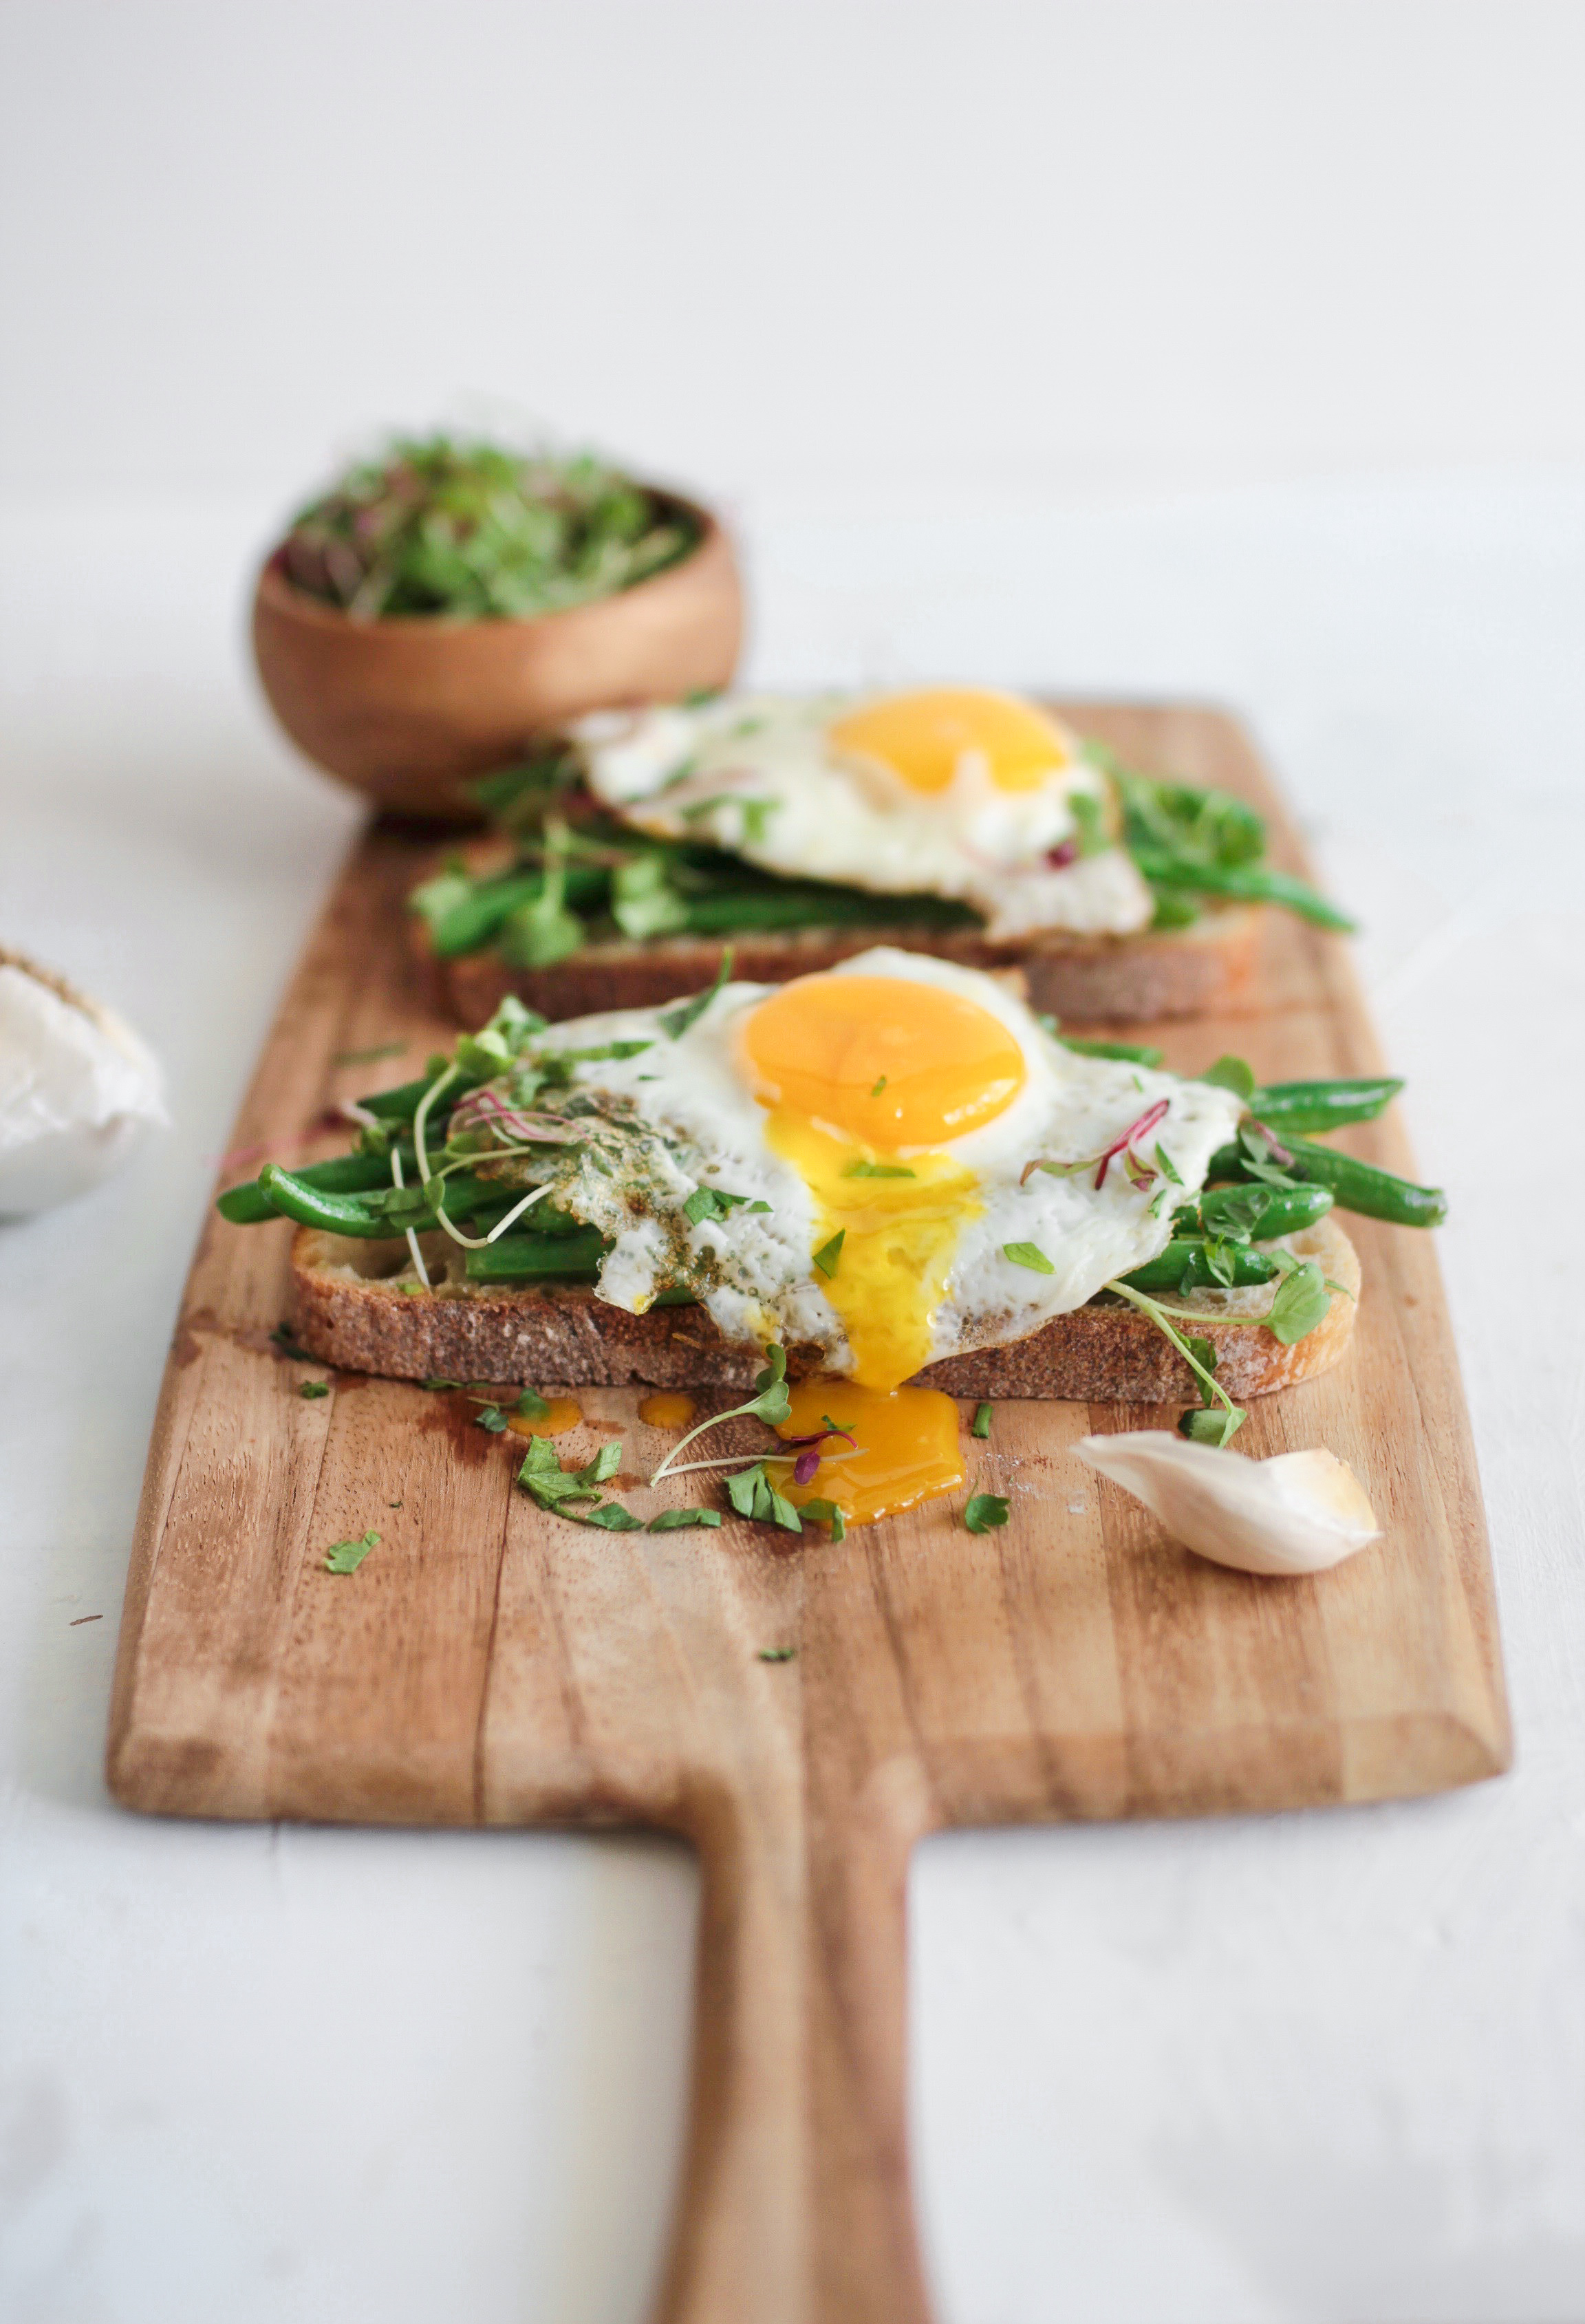 Best Brunch Vegetable Garlic Green Bean Toast with a Fried Egg